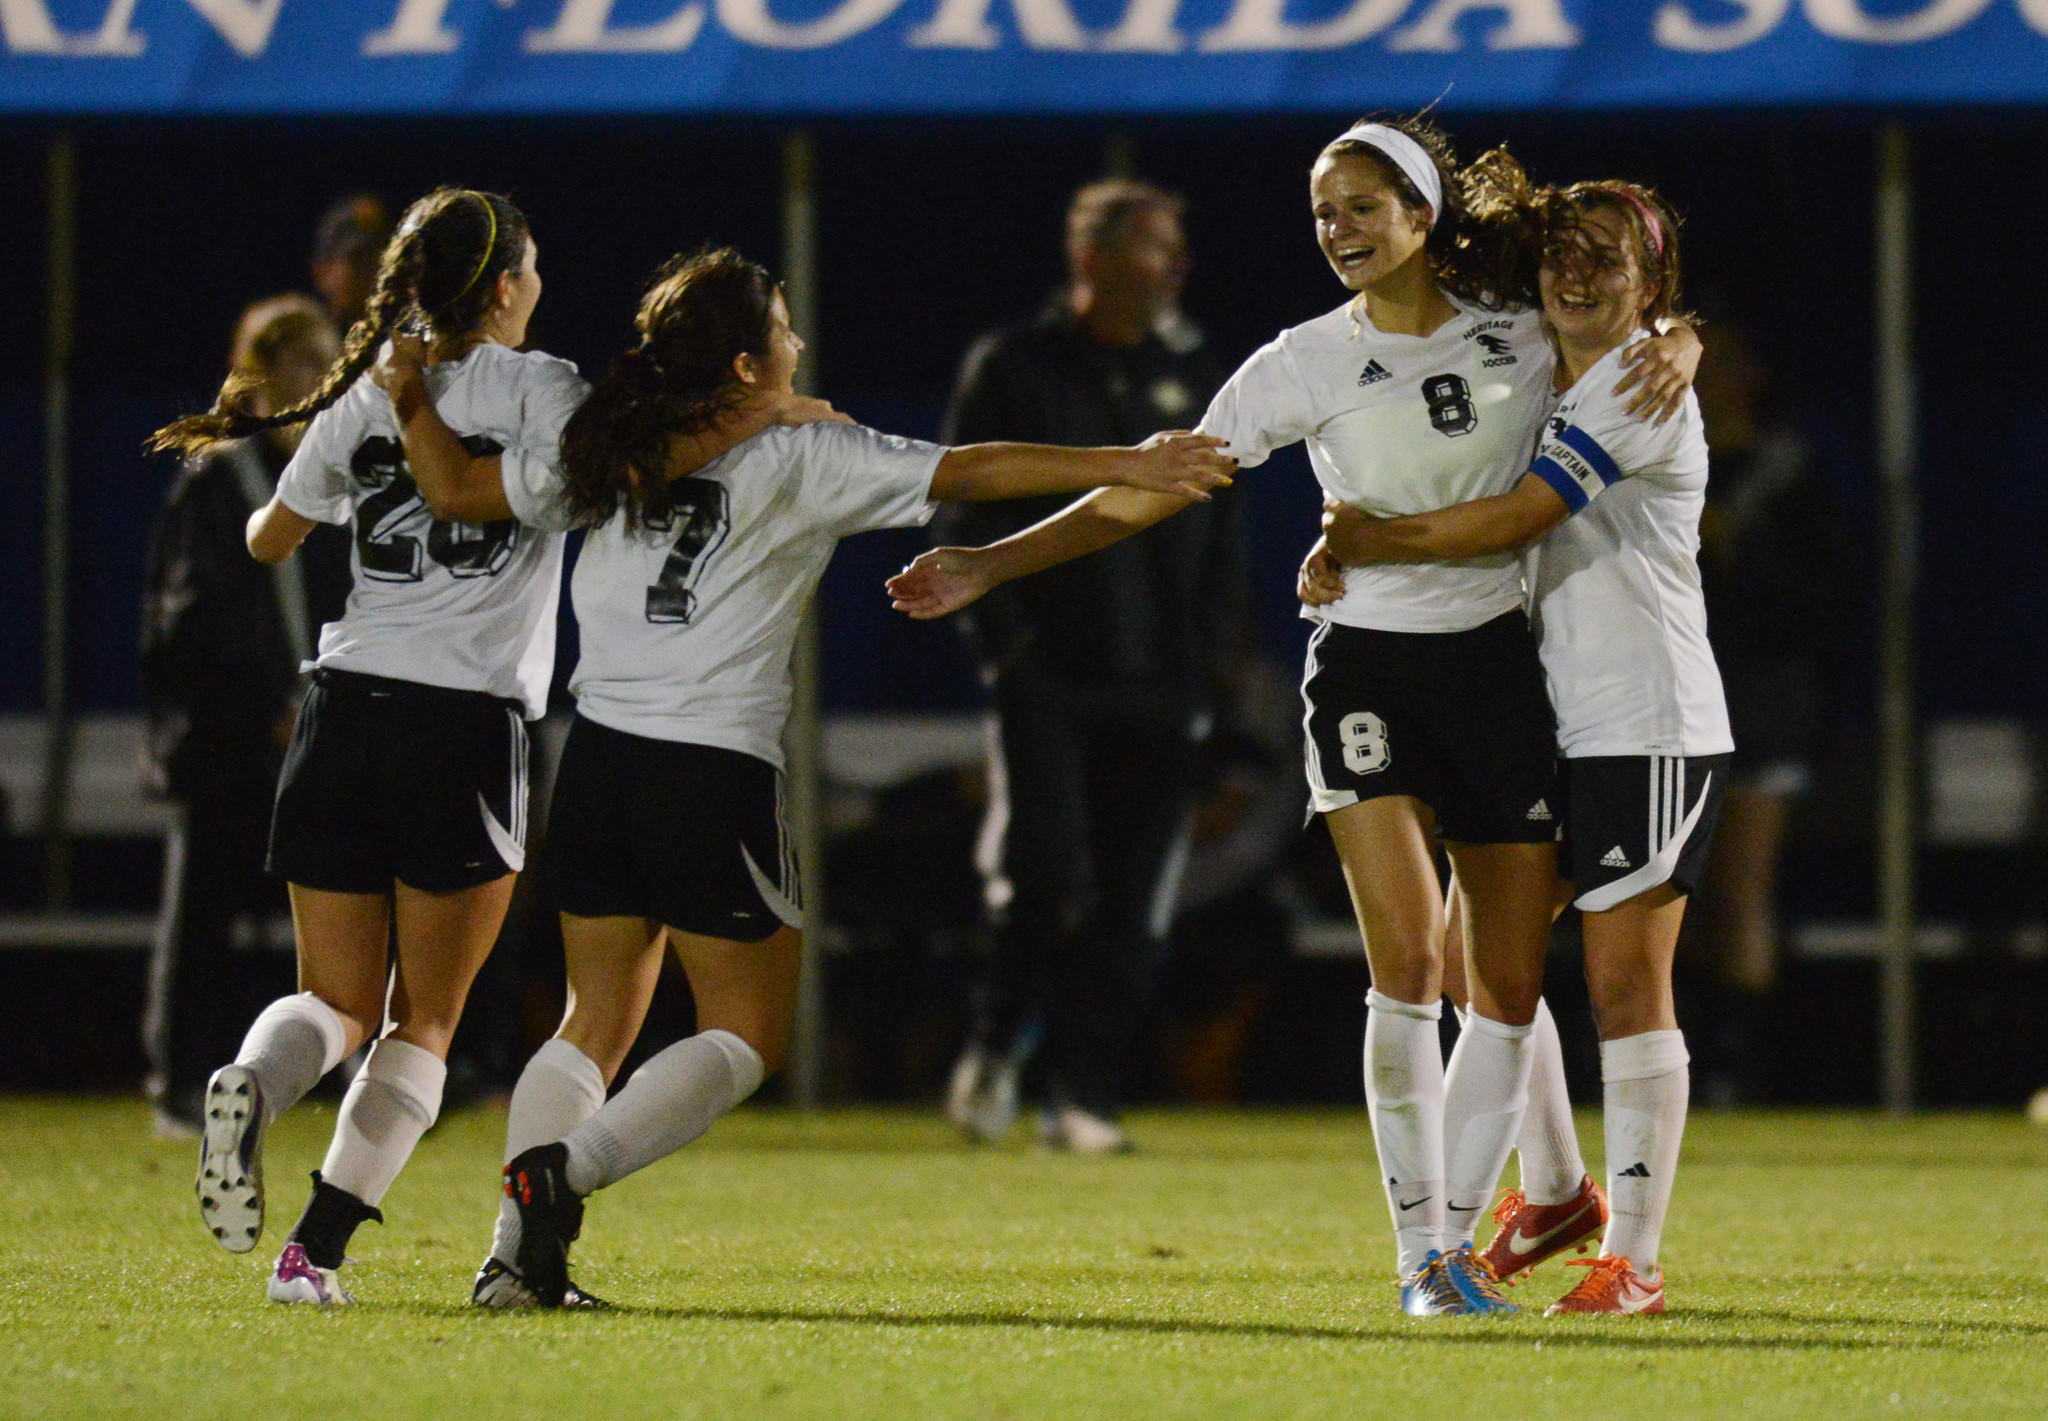 American Heritage celebrates winning the Class 3A state soccer title.